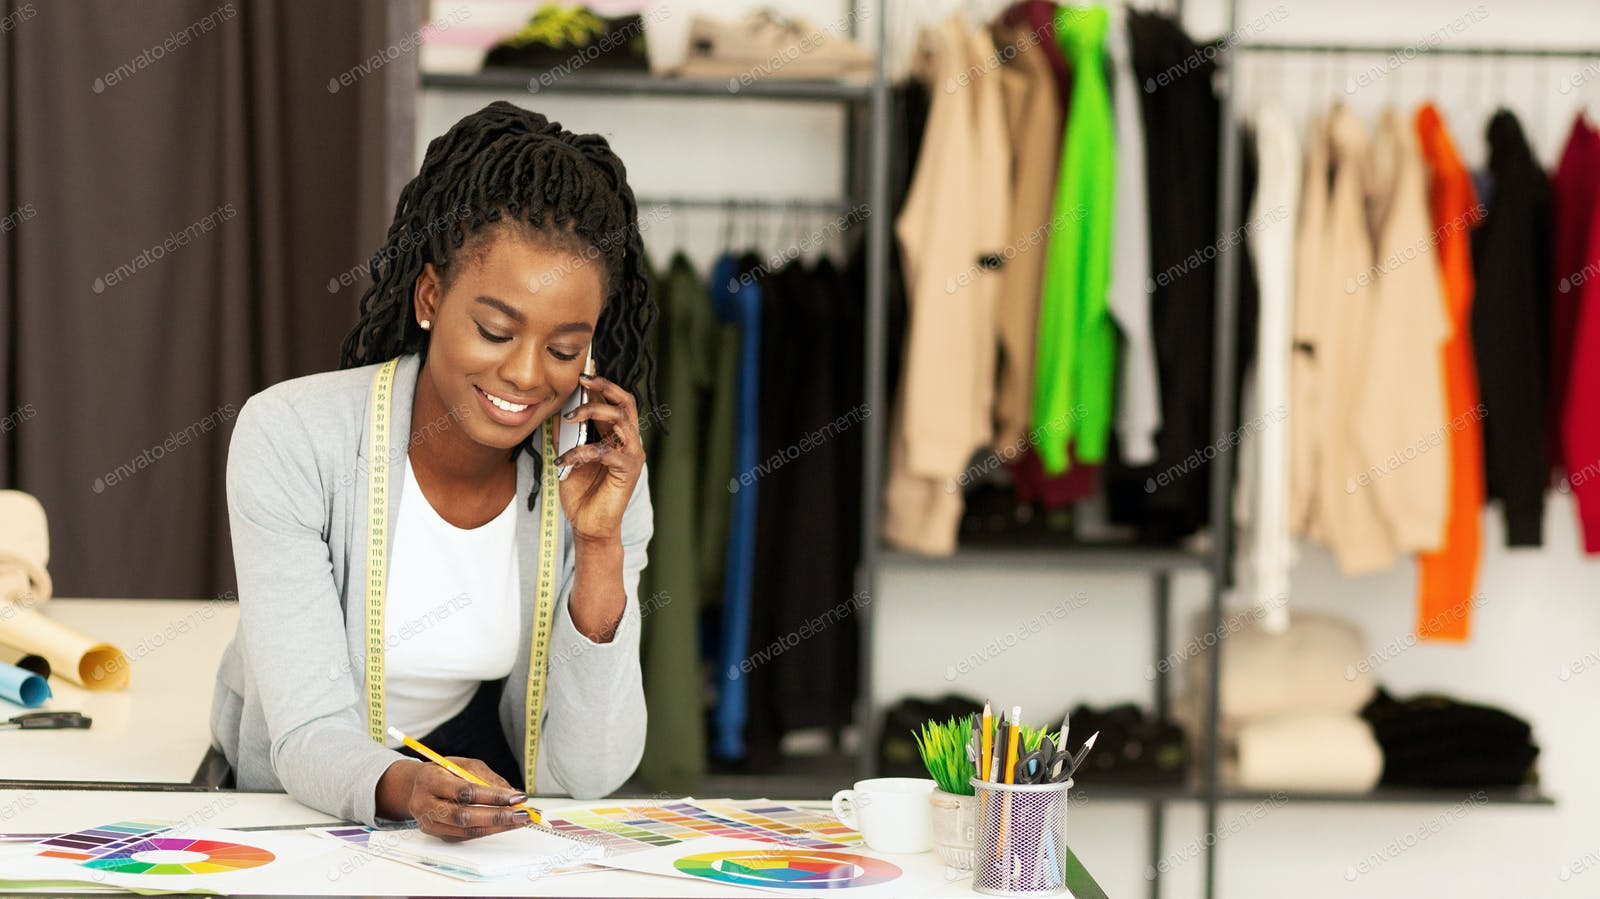 Fashion Store Assistant Receiving Phone Order Of Designer Clothes Photo By Prostock Studio On Envato Elements